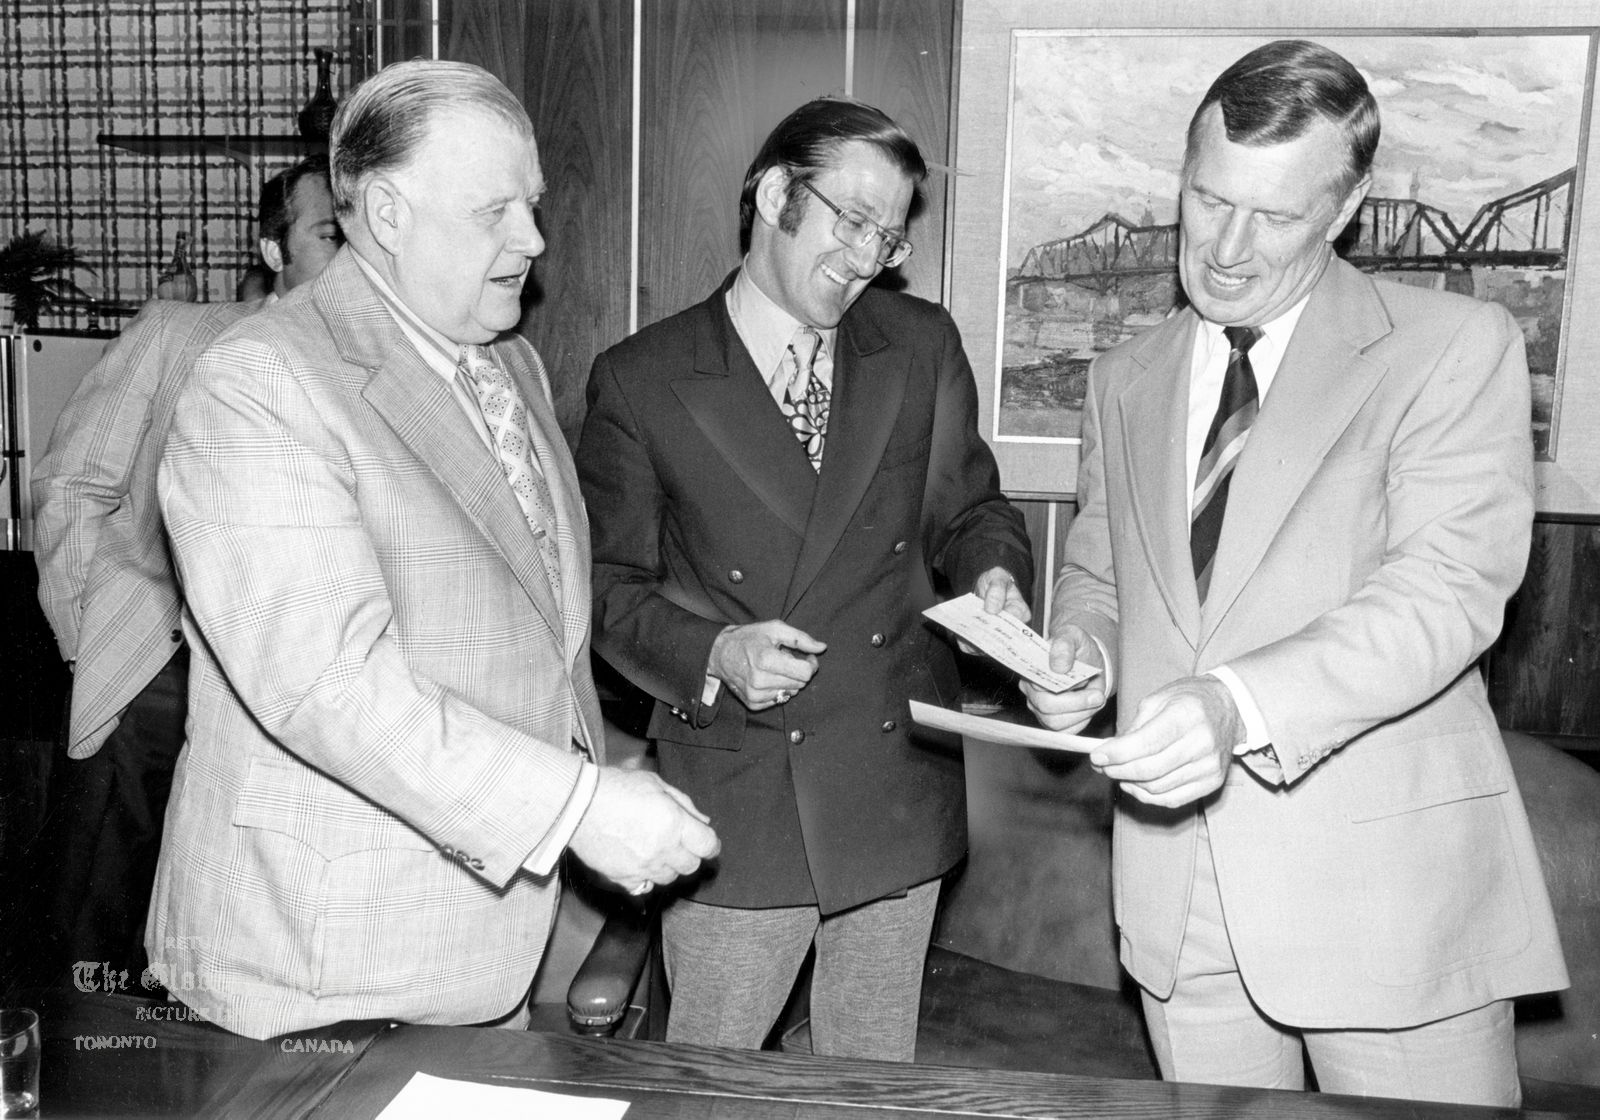 The notes transcribed from the back of this photograph are as follows: JUNE 26, 1972 -- CANADA-RUSSIA HOCKEY SERIES TV RIGHTS -- Harold Ballard, left, and Alan Eagleson, centre, each hand over $100,000 cheques to Allan Scott, business manager of Hockey Canada on June 26, 1972 in Toronto as down payment for the $750,000 television rights for the Canada-Russia Summit Series due to begin Sept. 2, 1972. Photo by Tibor Kolley / The Globe and Mail Originally published June 27, 1972. Summit Series